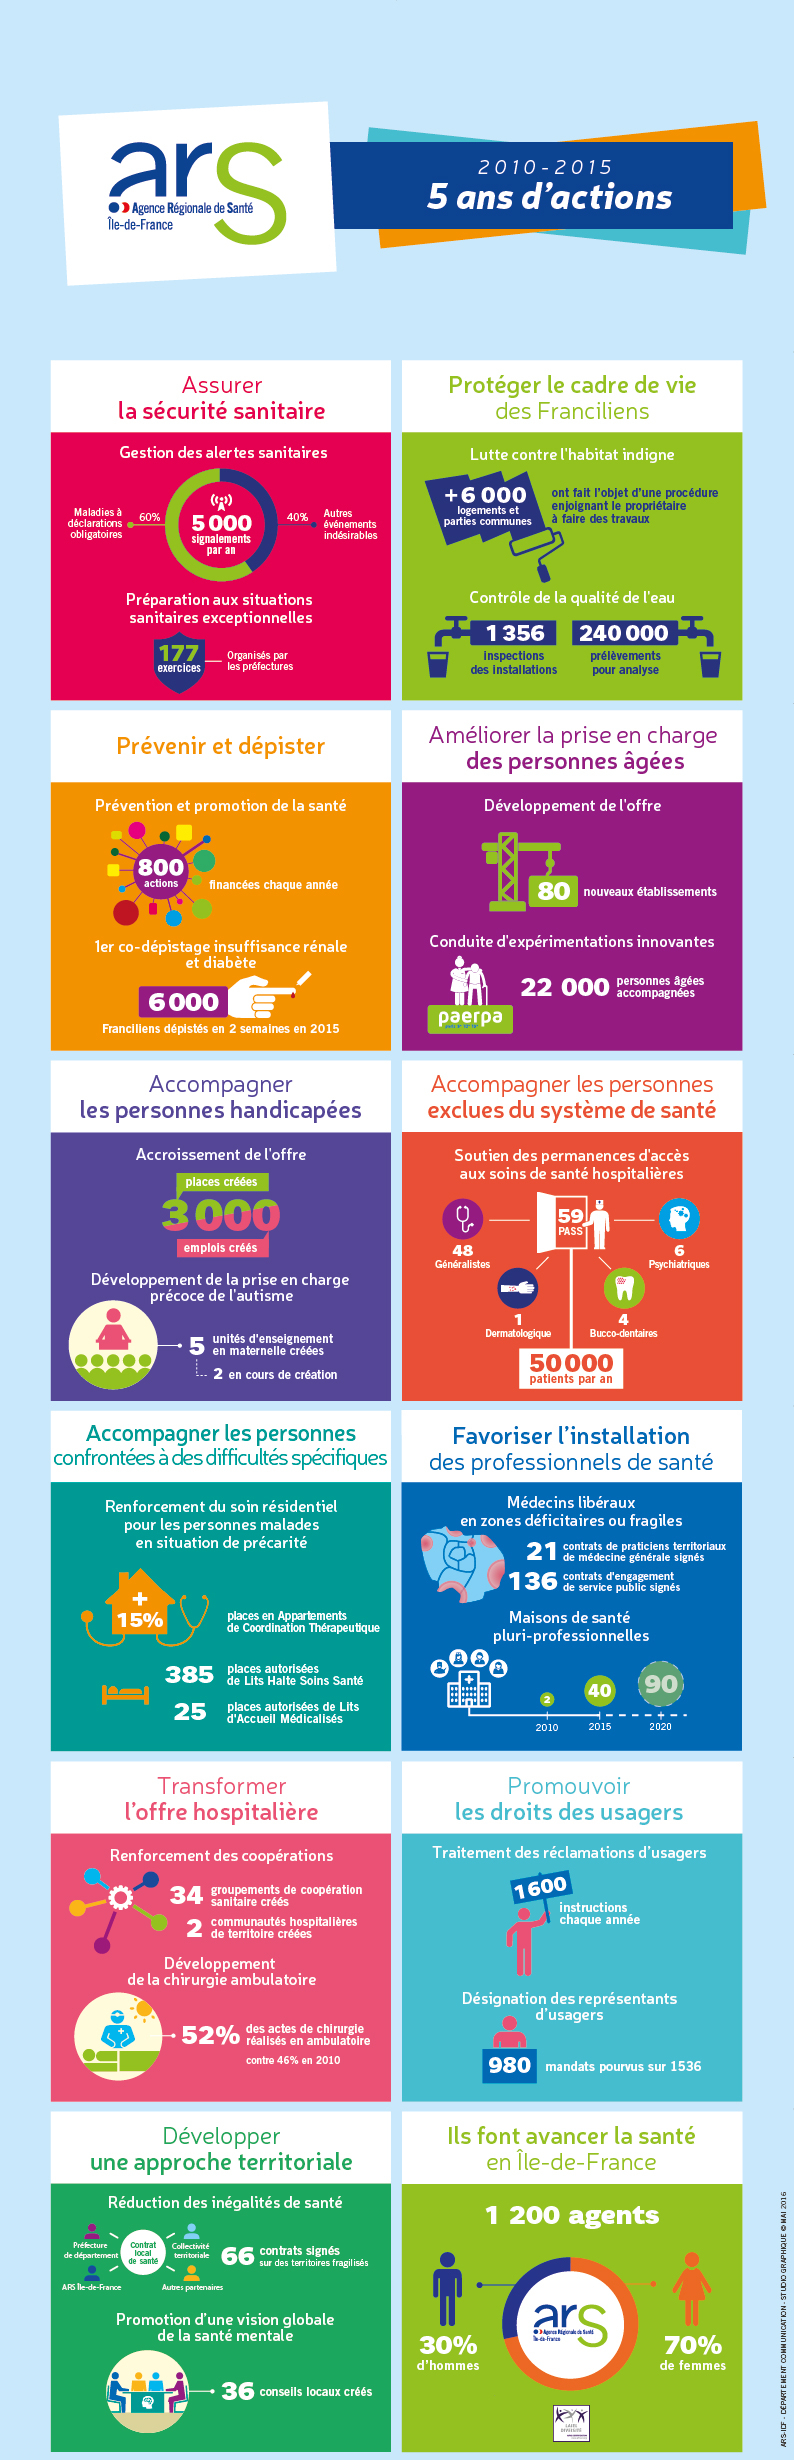 2010-2015 : 5 ans d'actions (infographie)